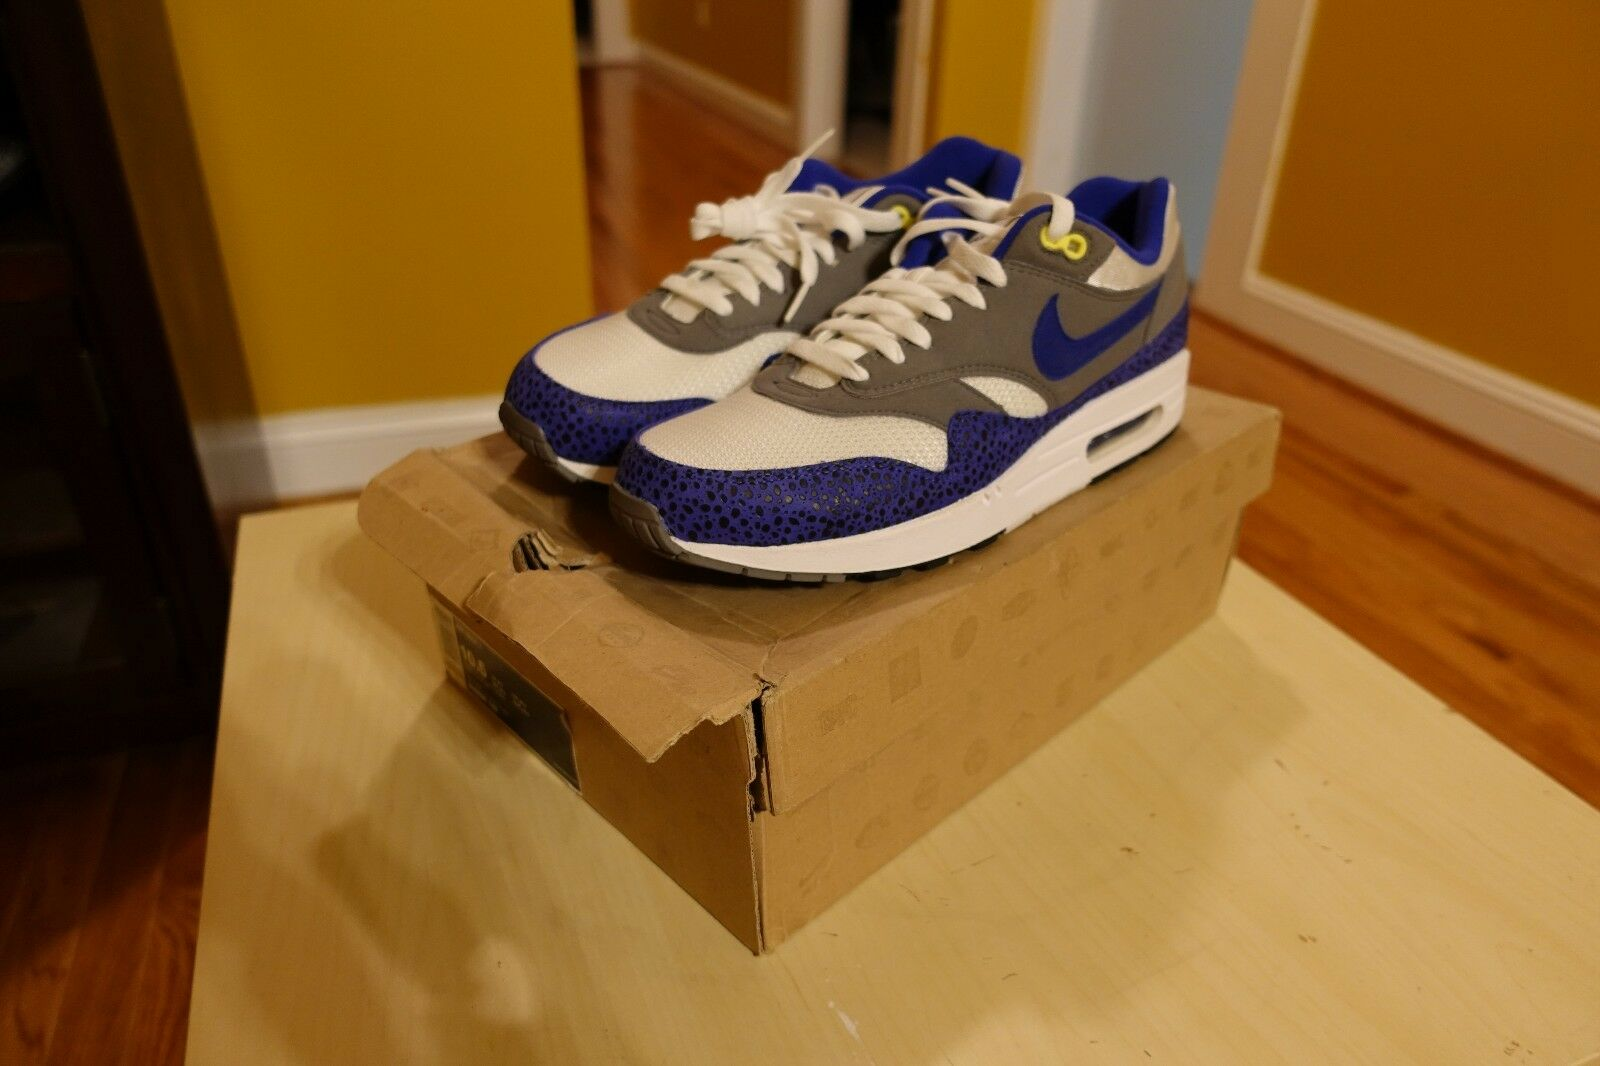 NIKE AIR MAX 1 SAFARI blueE SIZE 10.5 BRAND NEW 308866 142 PATTA UNDEFEATED ATMOS